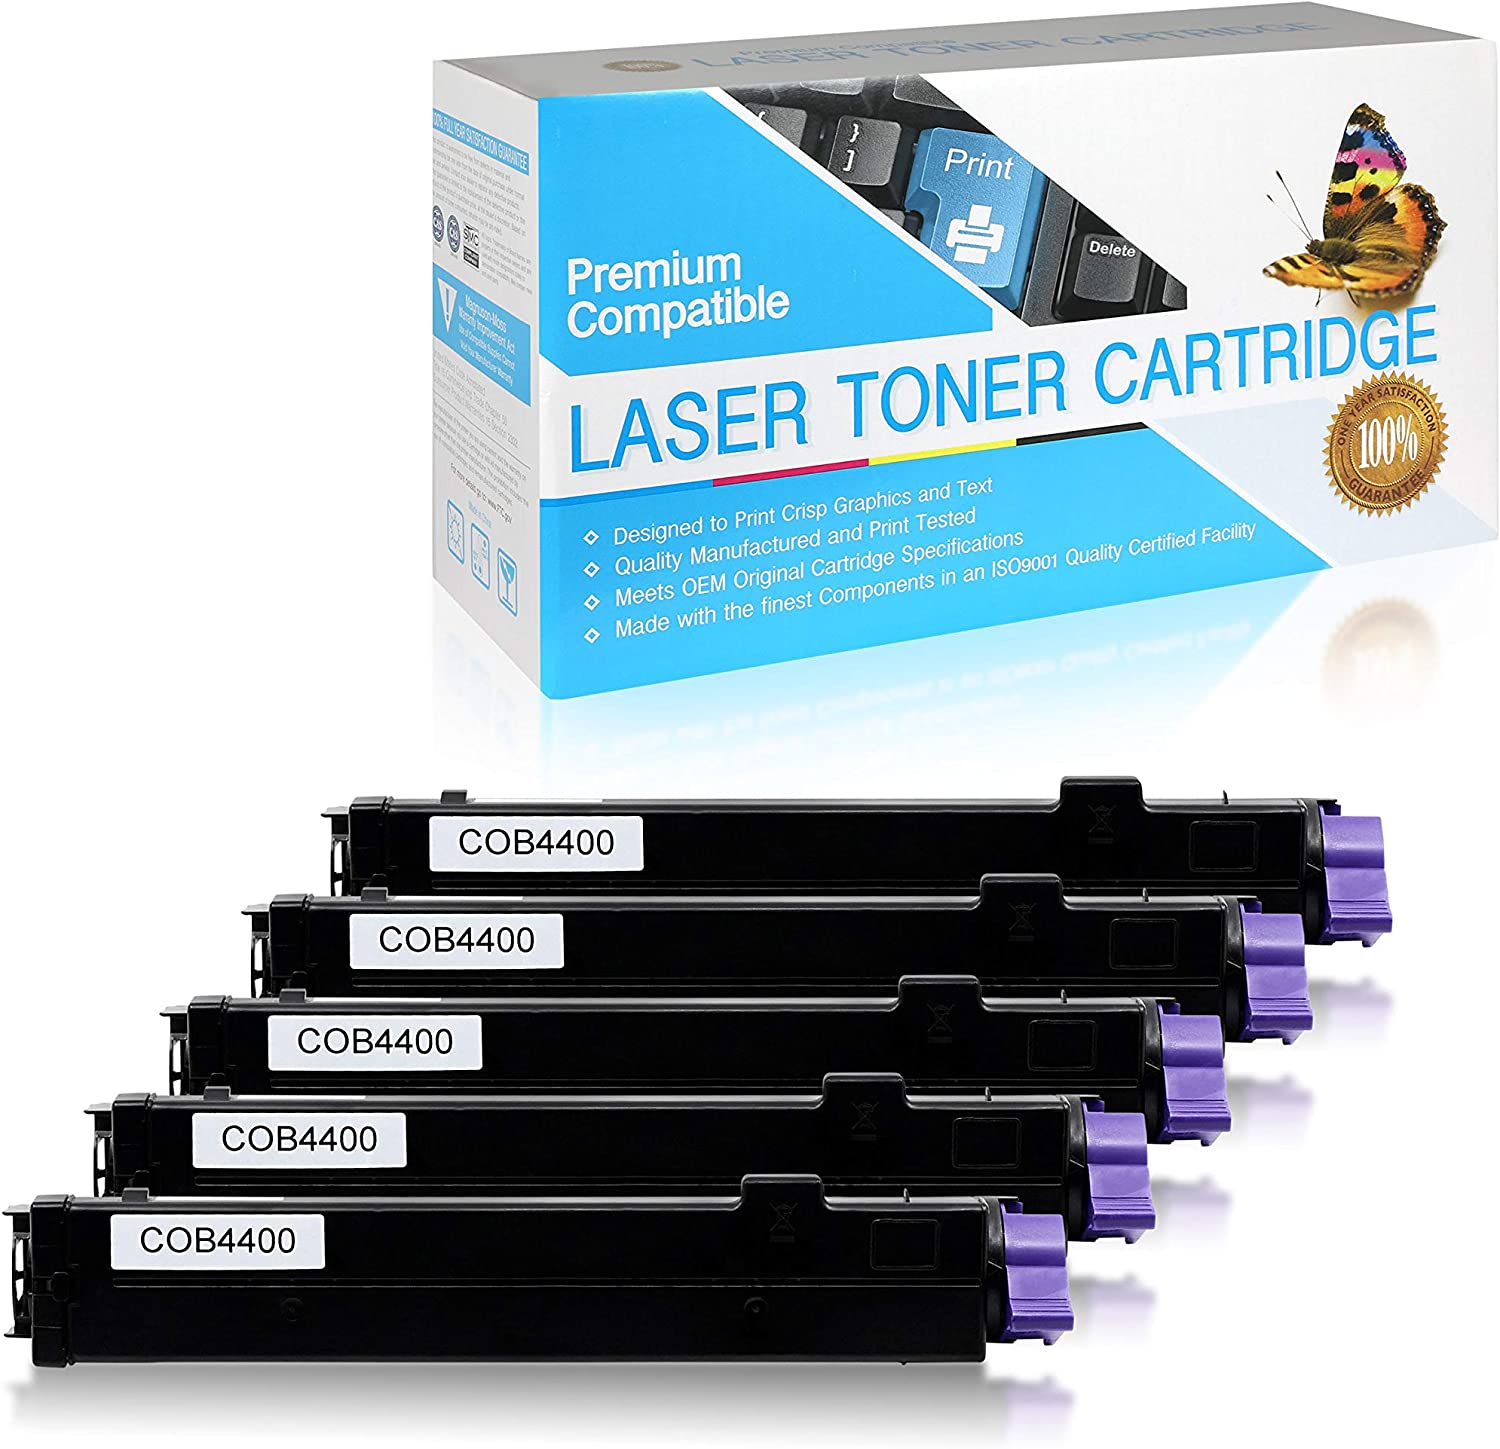 43502301 B4400 USA Advantage Compatible Toner Cartridge Replacement for Okidata Type 9 Black,4 Pack